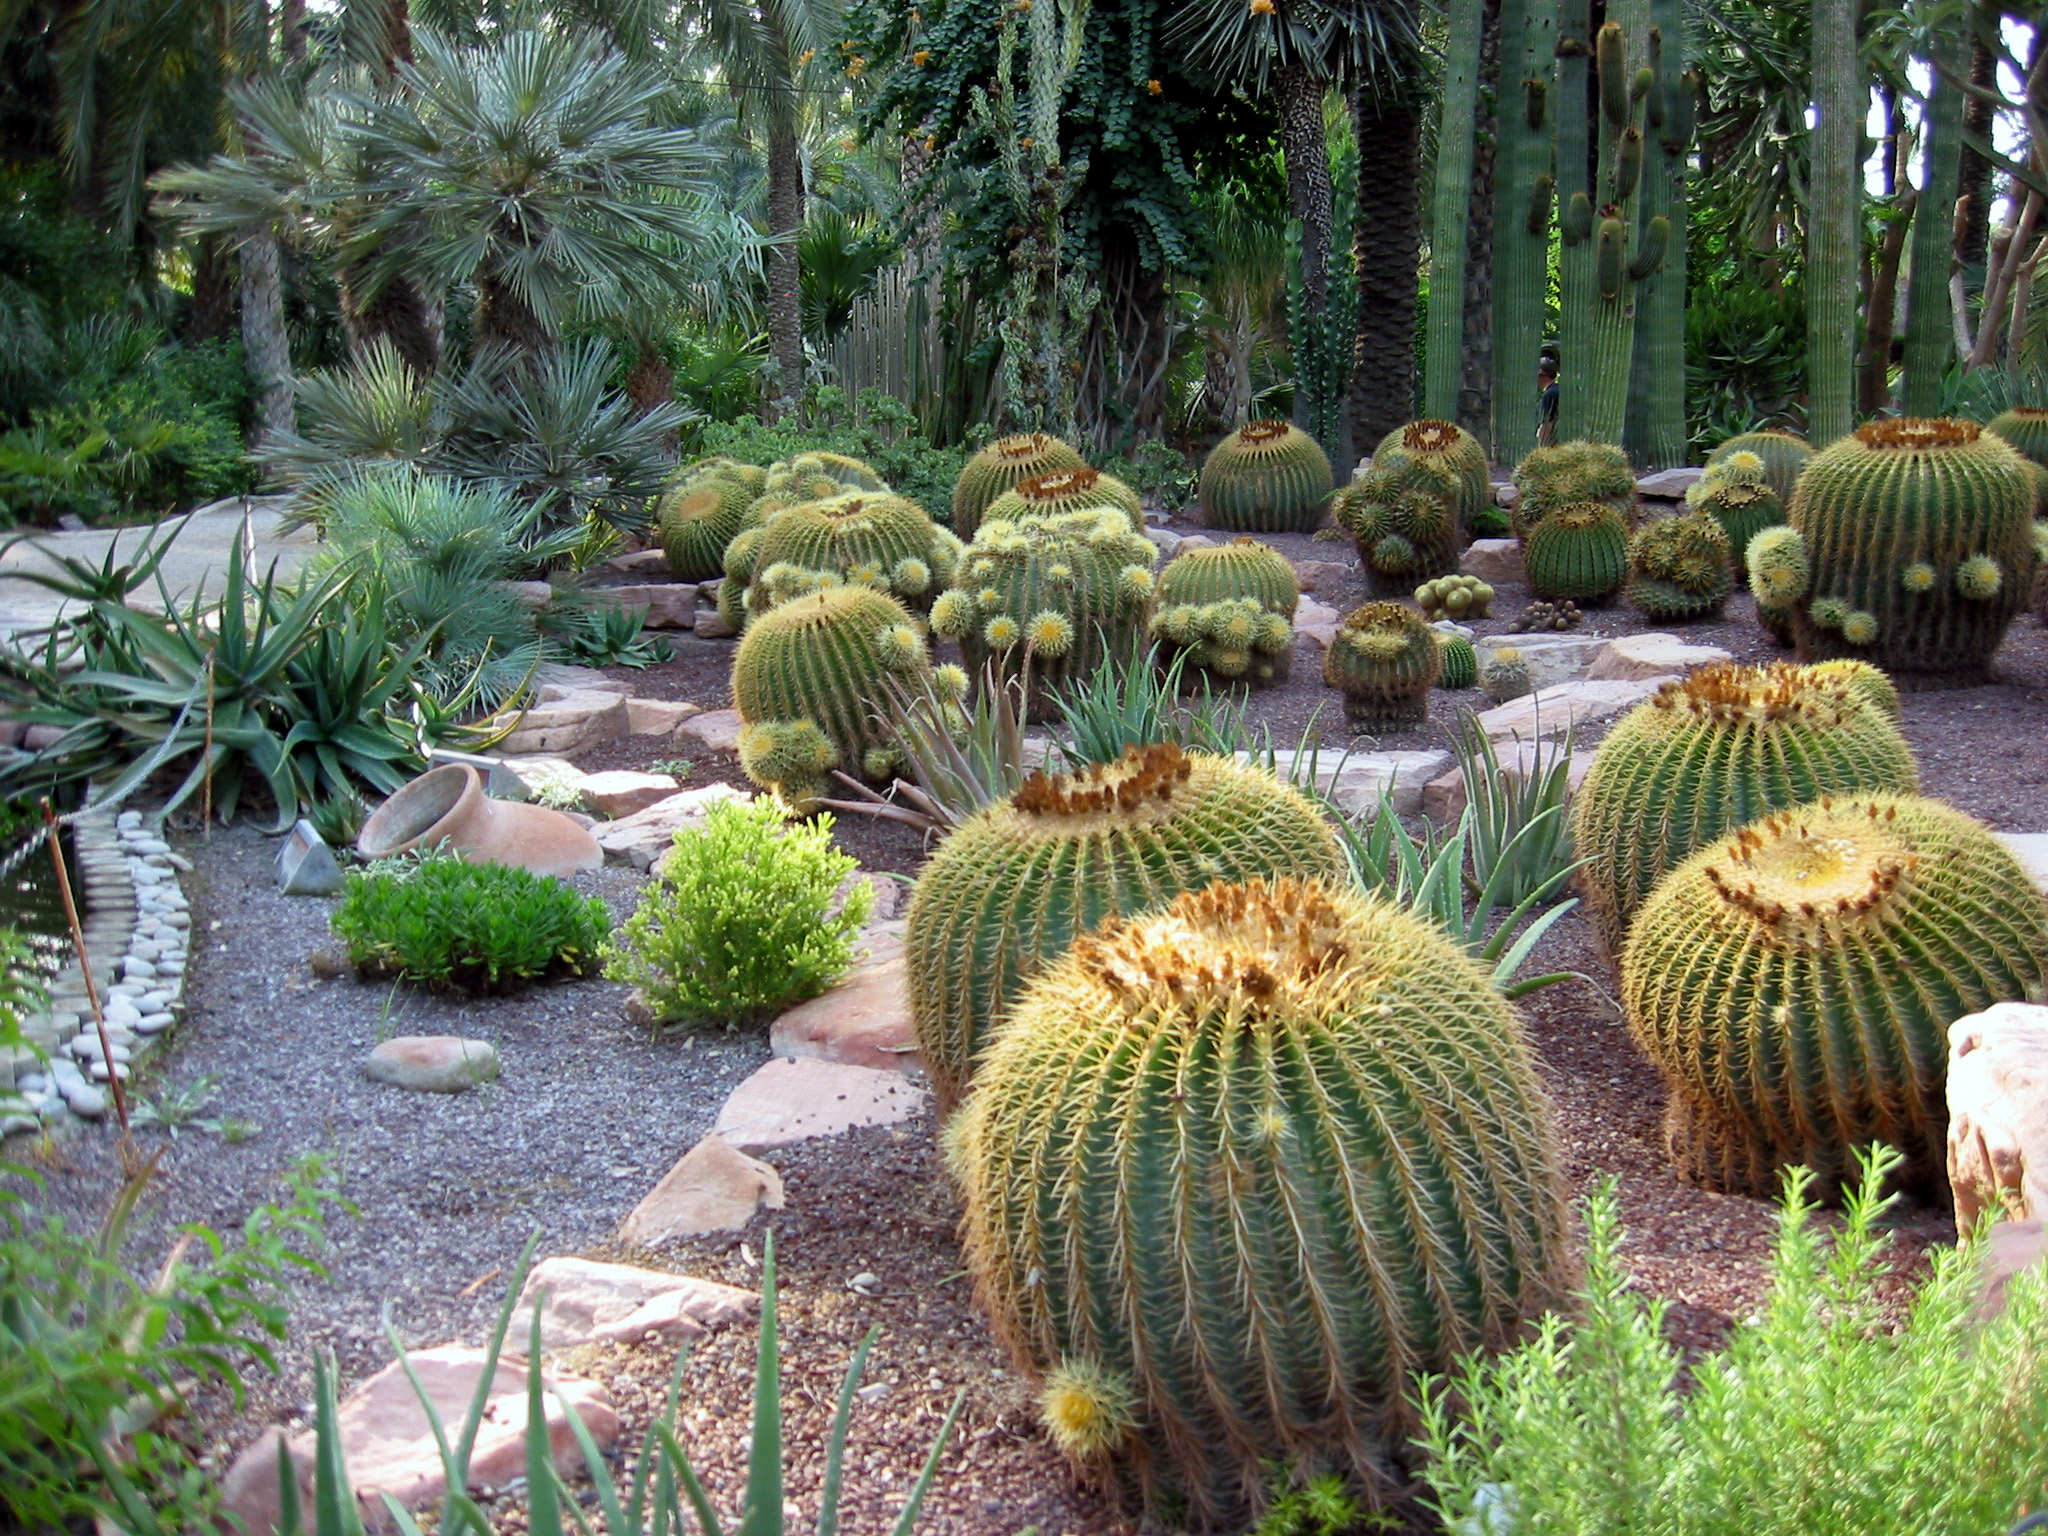 http://upload.wikimedia.org/wikipedia/commons/5/5a/Echinocactus-grusoni-group.jpg